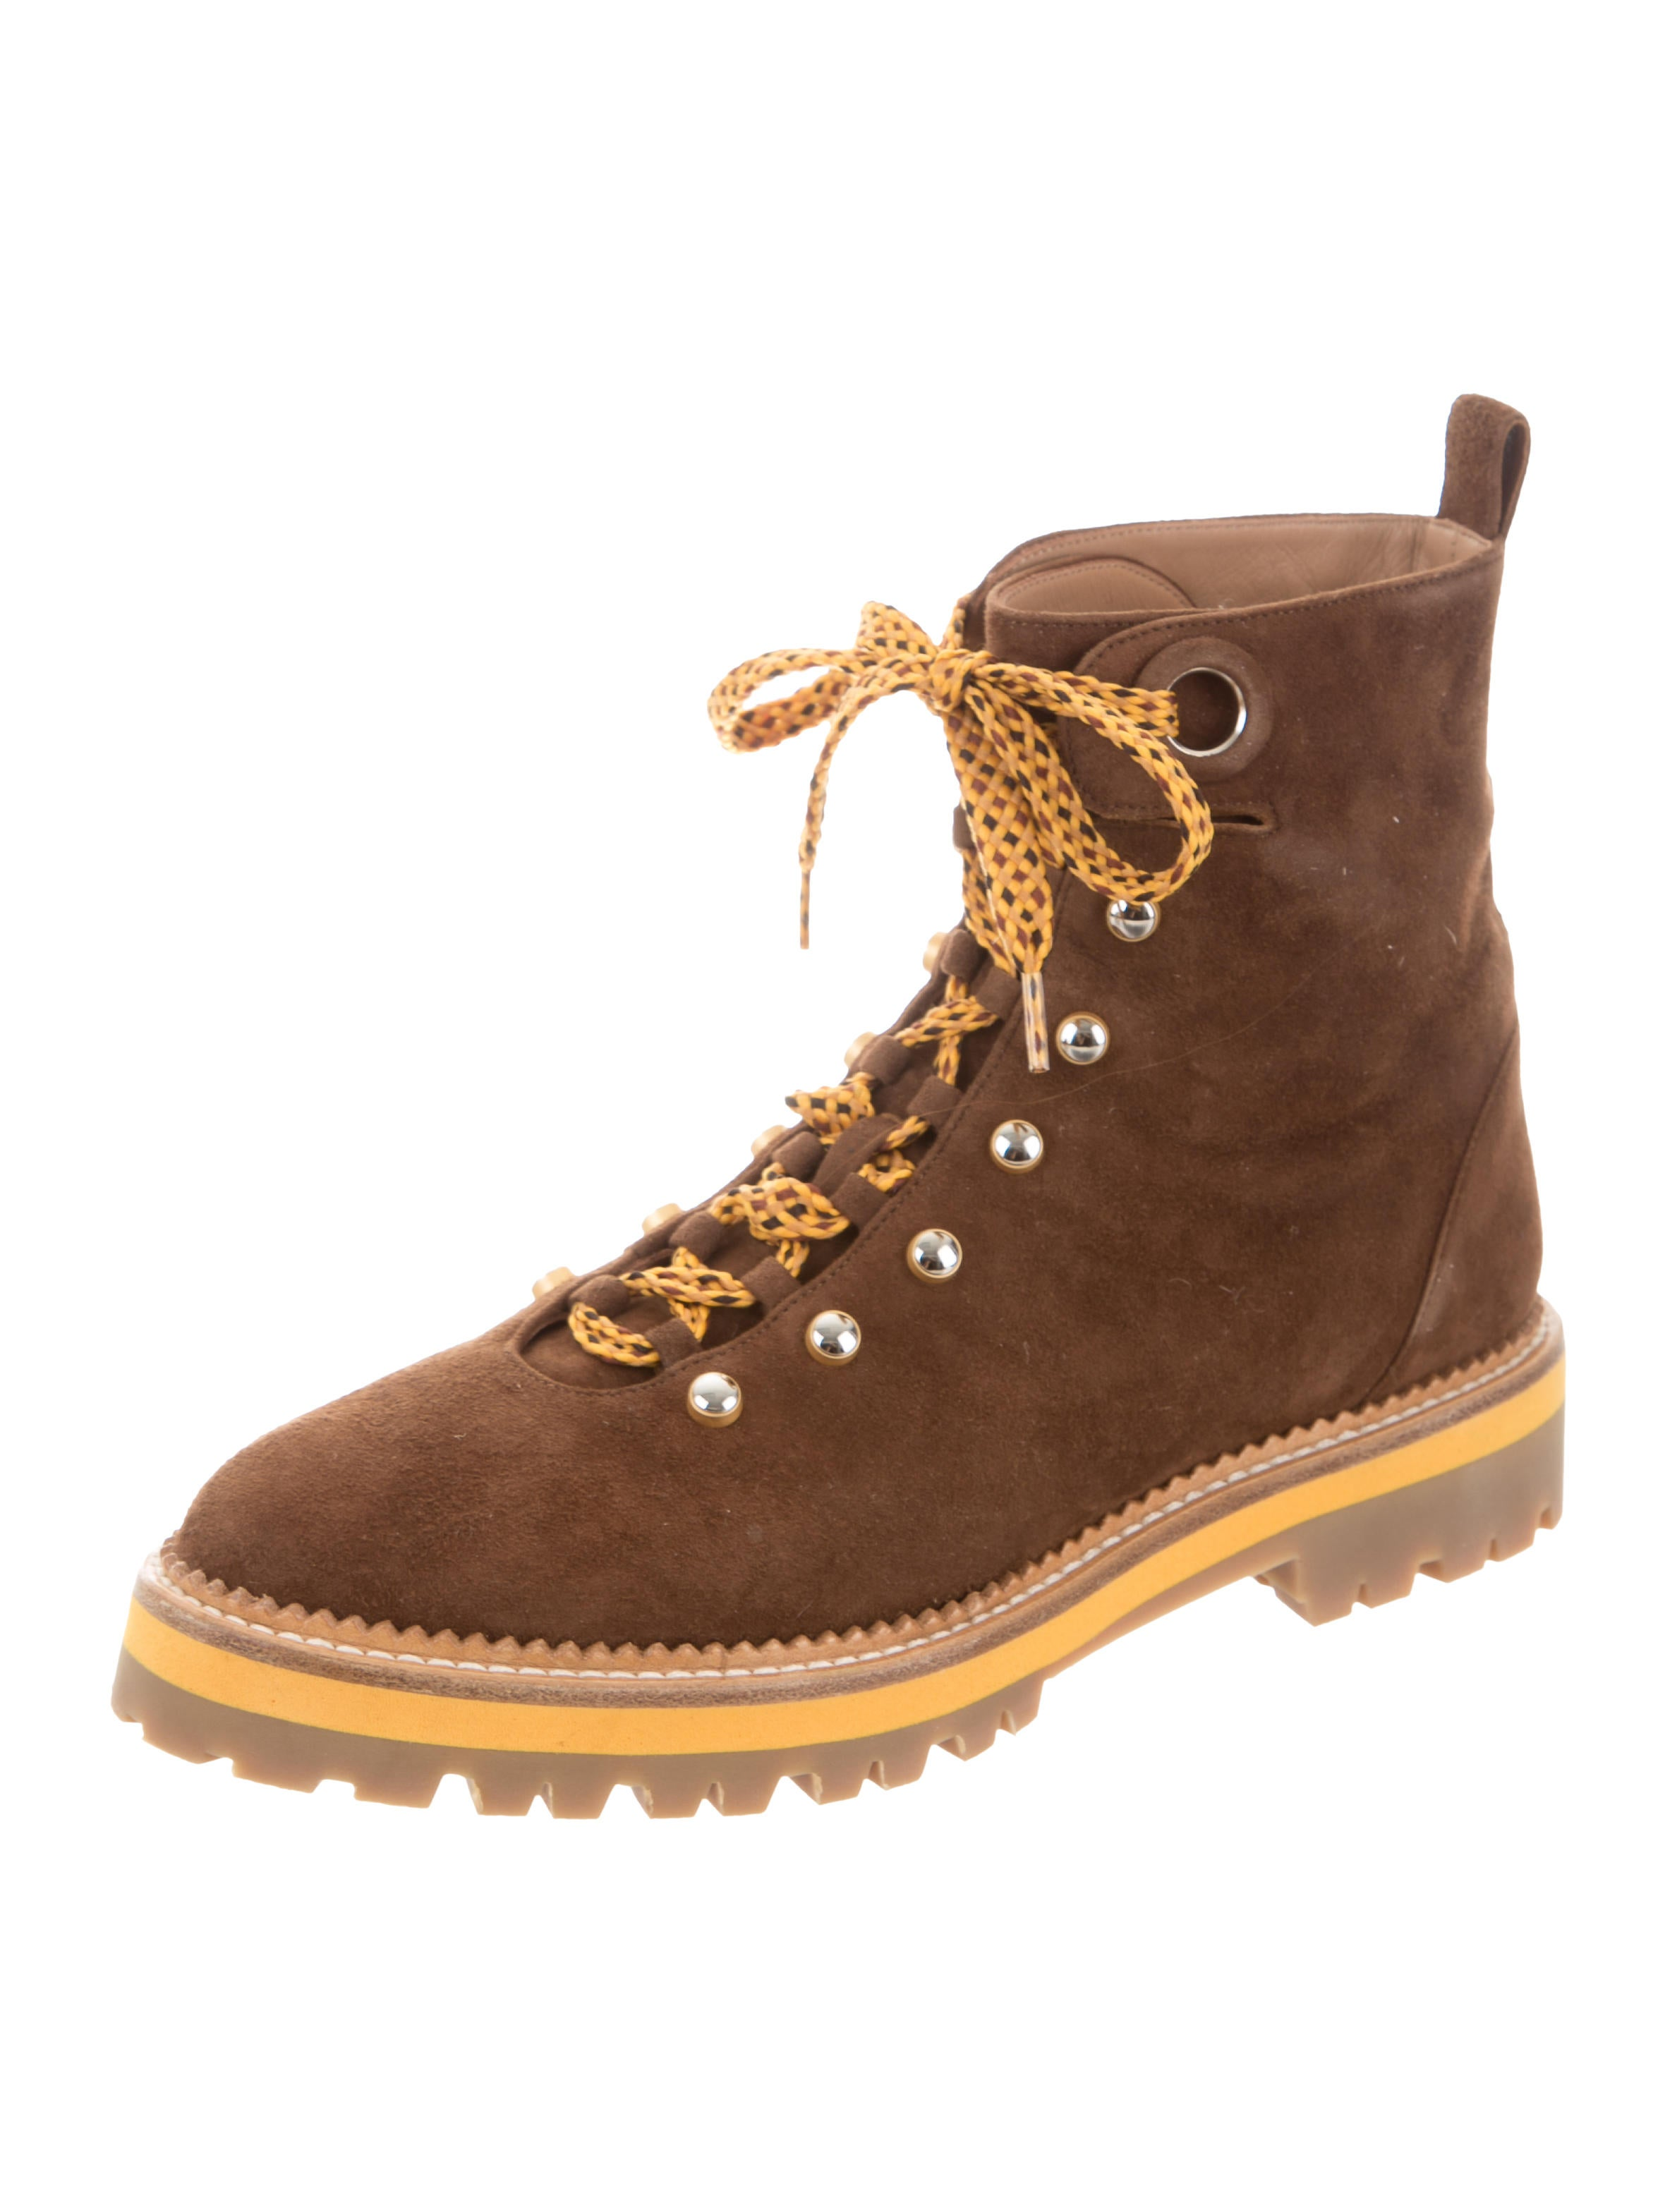 buy cheap pictures Aquazzura Suede Hiking Boots w/ Tags wholesale price great deals for sale many kinds of for sale outlet free shipping oKUmvRRjC